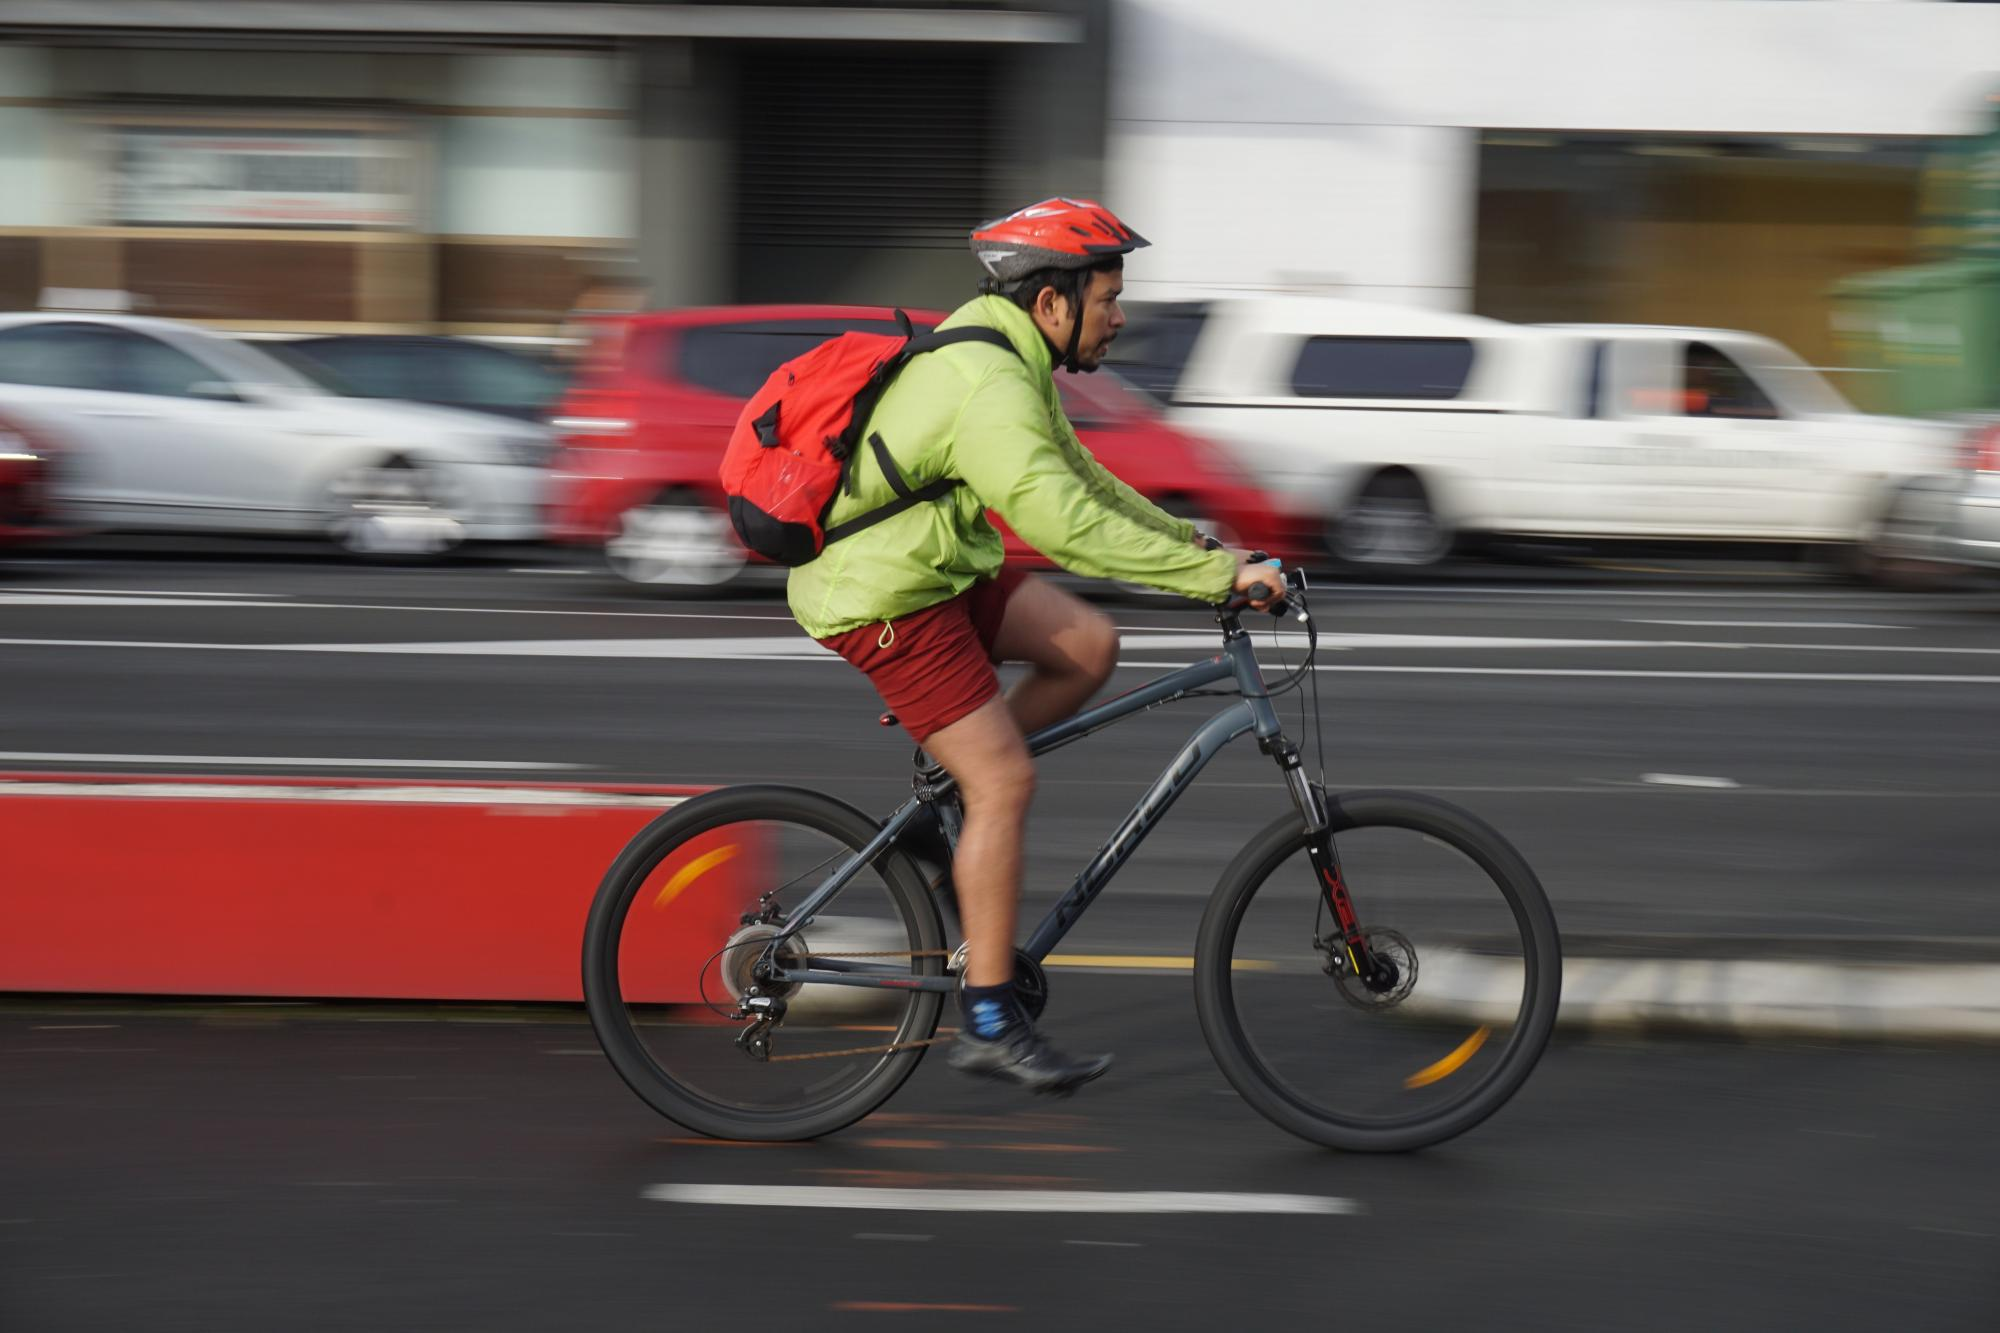 Man riding a bike in a road with cars behind him